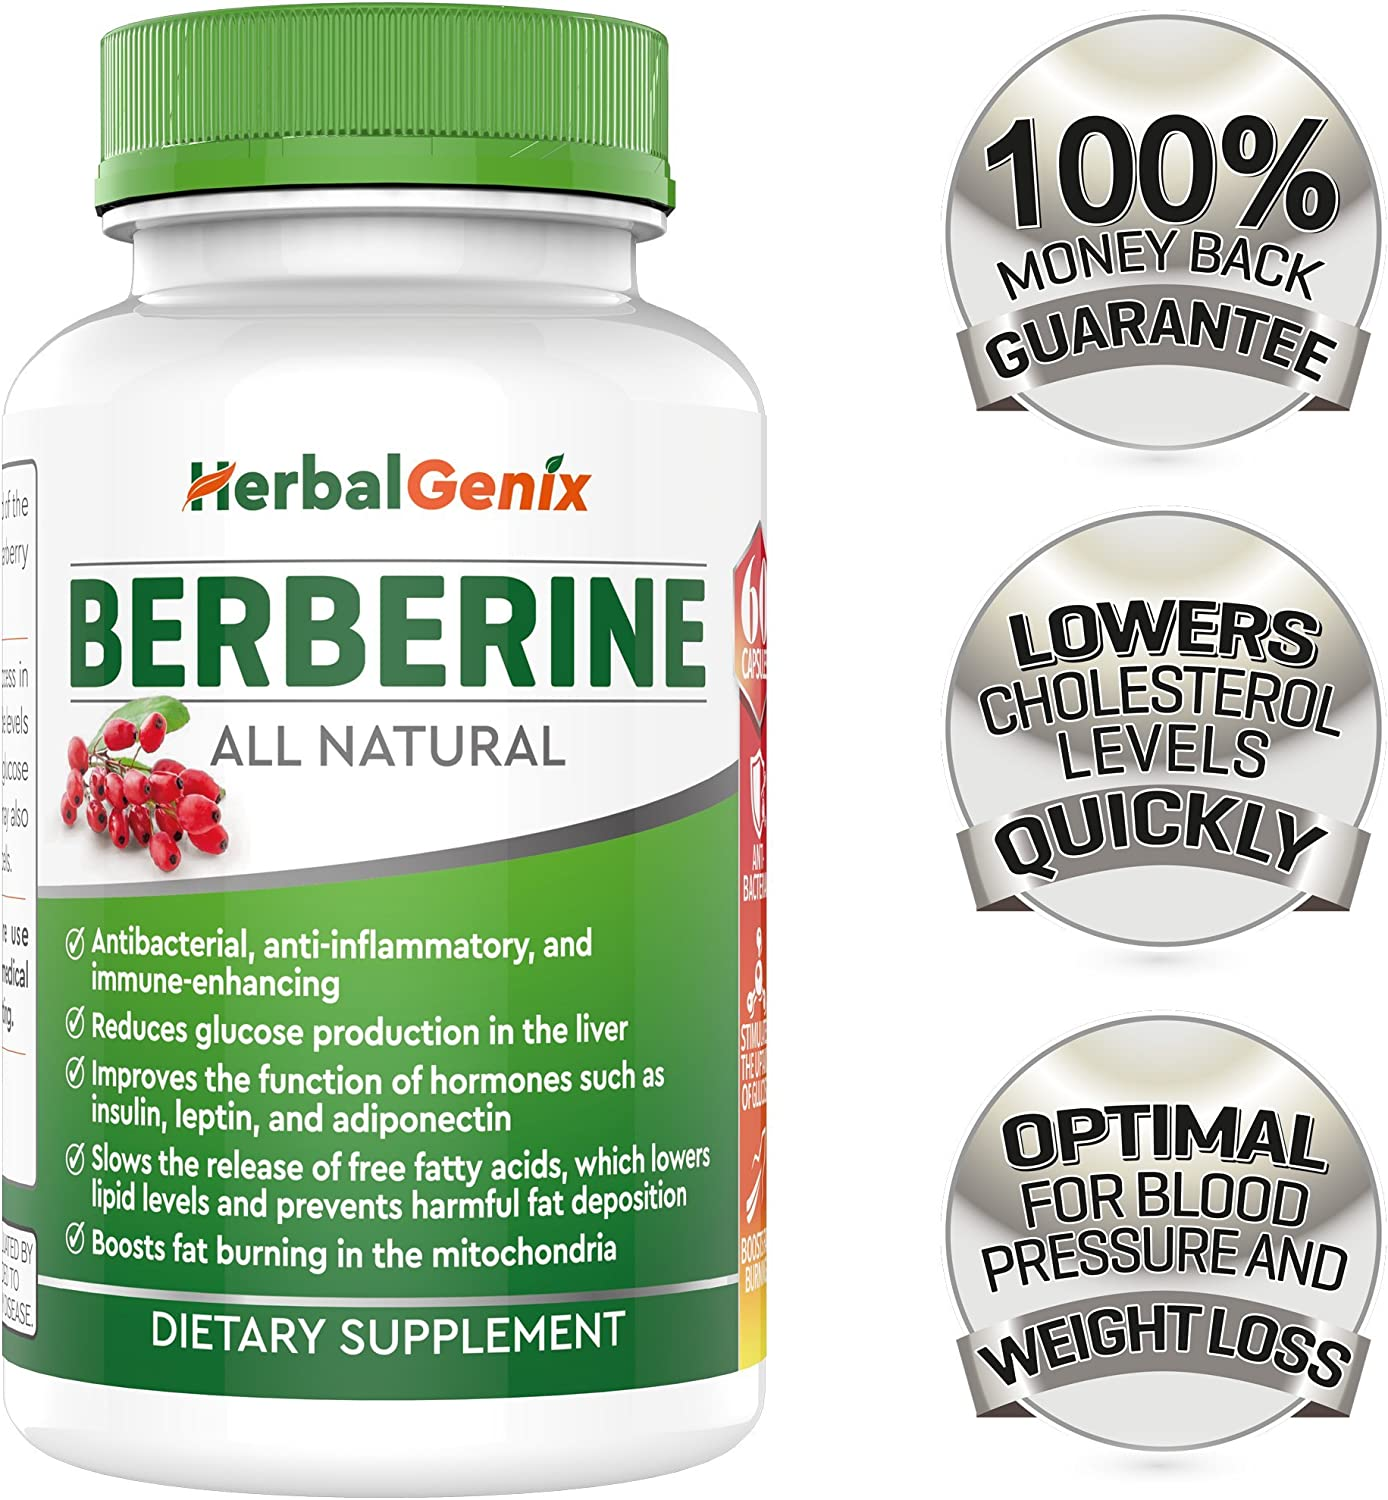 Lower Cholesterol, Triglyceride, Weight & Lower Blood Sugar with HerbalGenix Berberine 500mg HCL Supplement. All Natural Ingredients. Antioxidant, AMPK Supplement. Non-GMO/Gluten Free/Vegan Caps